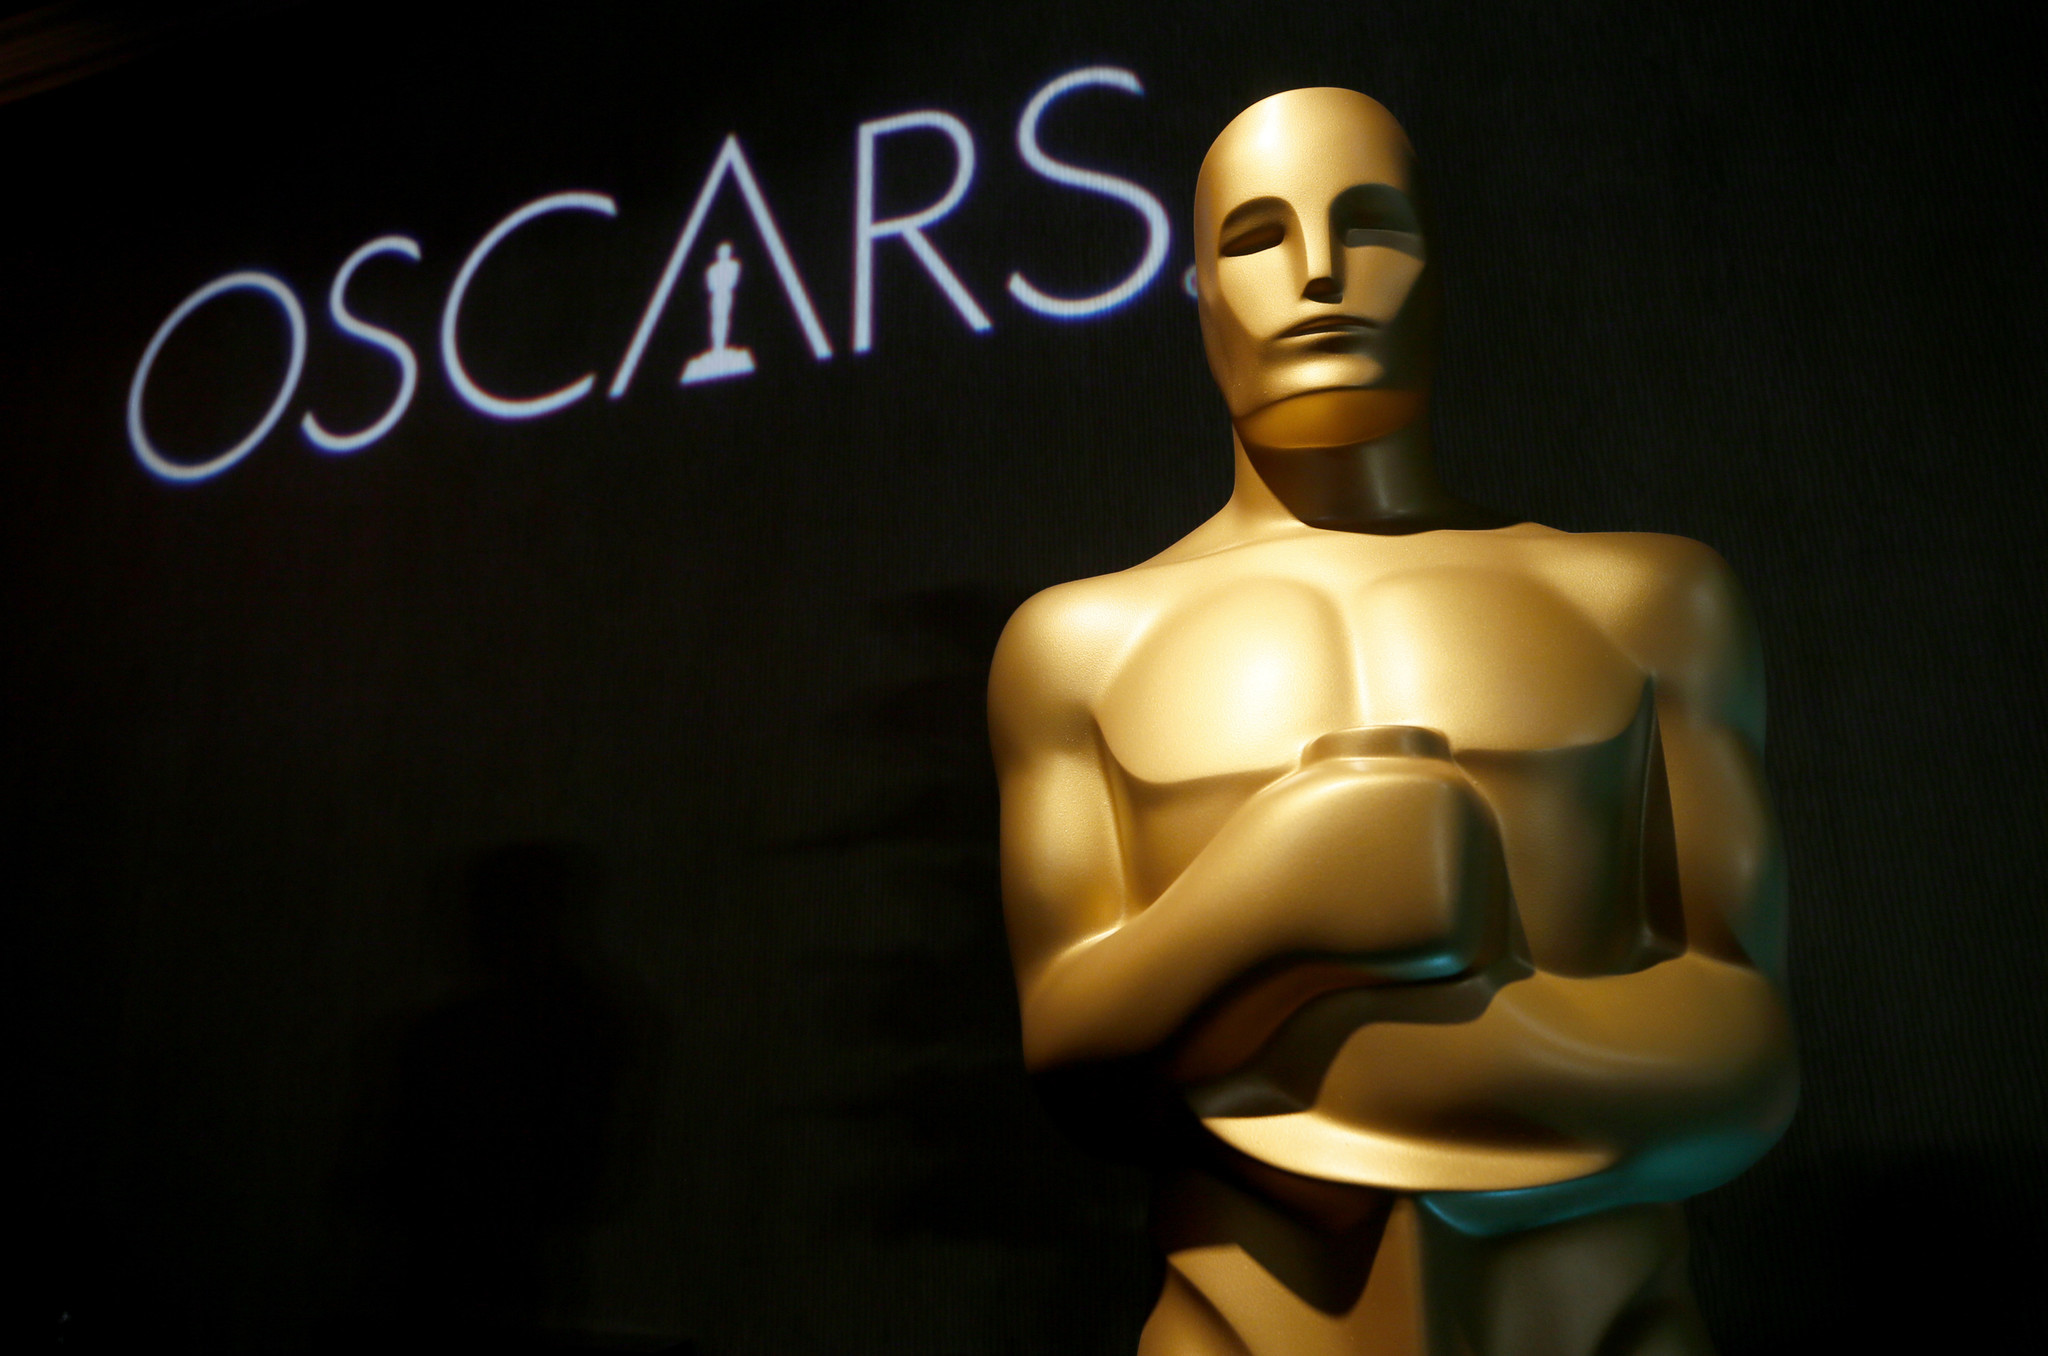 Heavens to Mercury! It's Oscar quiz time, and the show must go on